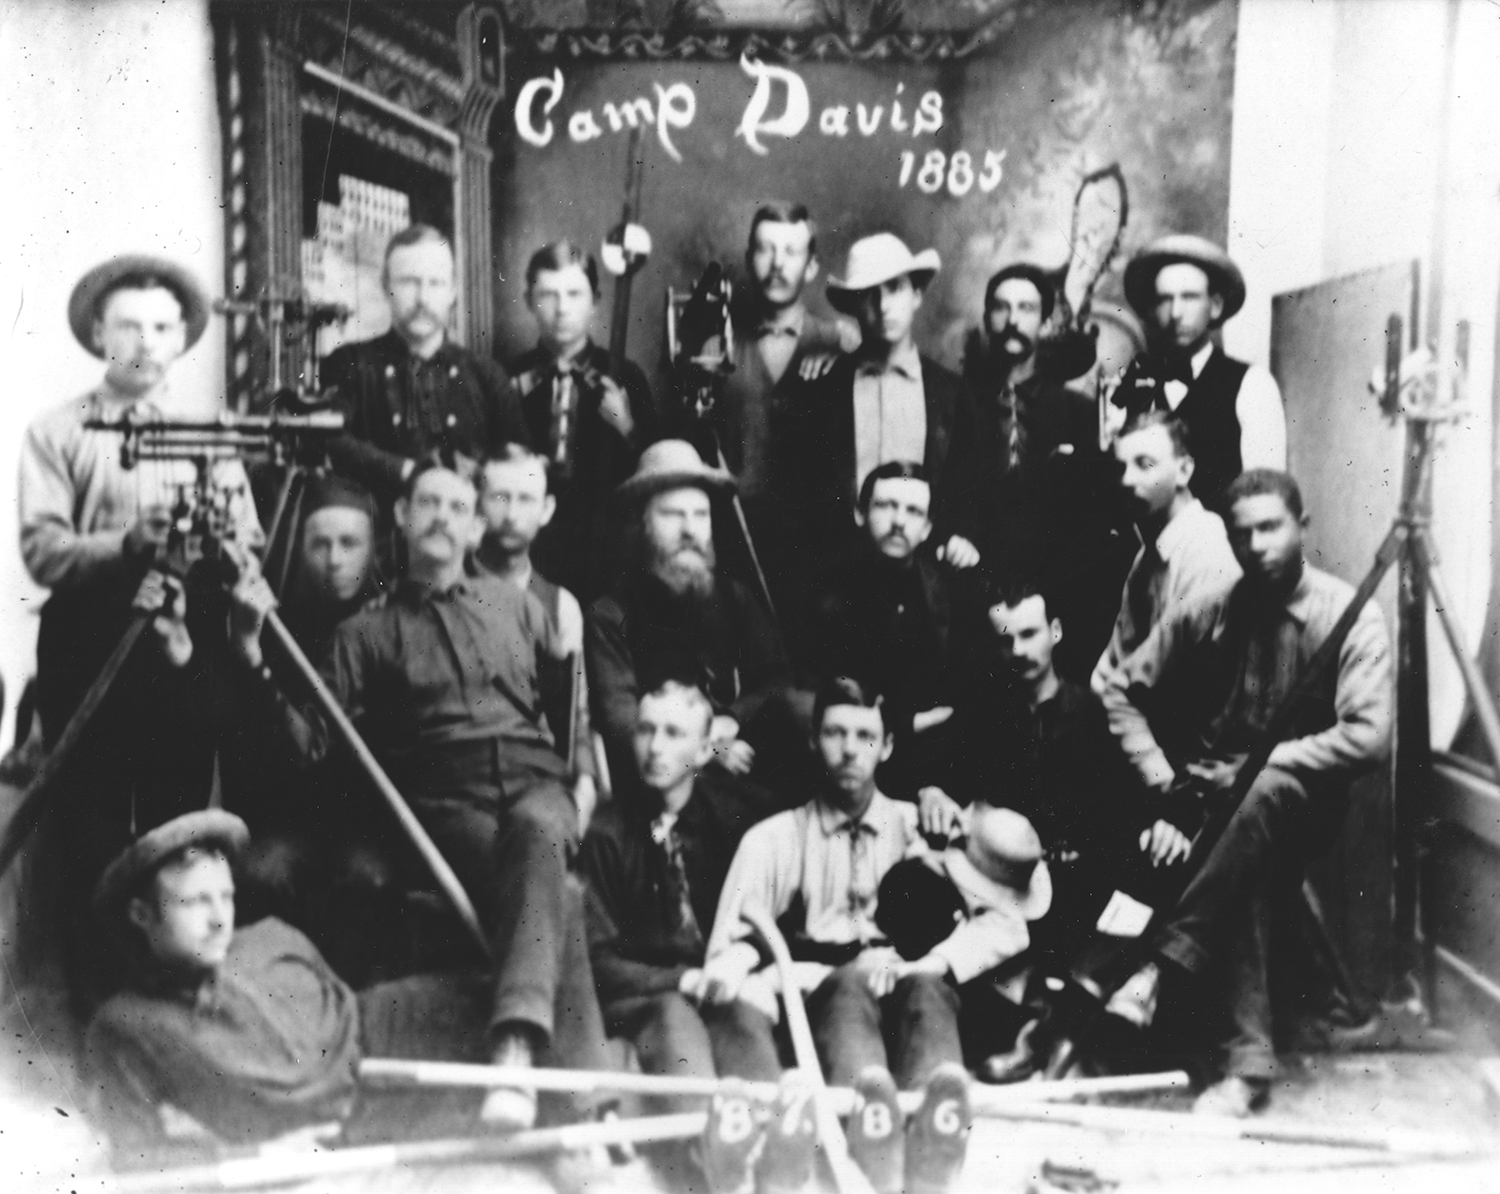 The Camp Davis attendees of 1885.